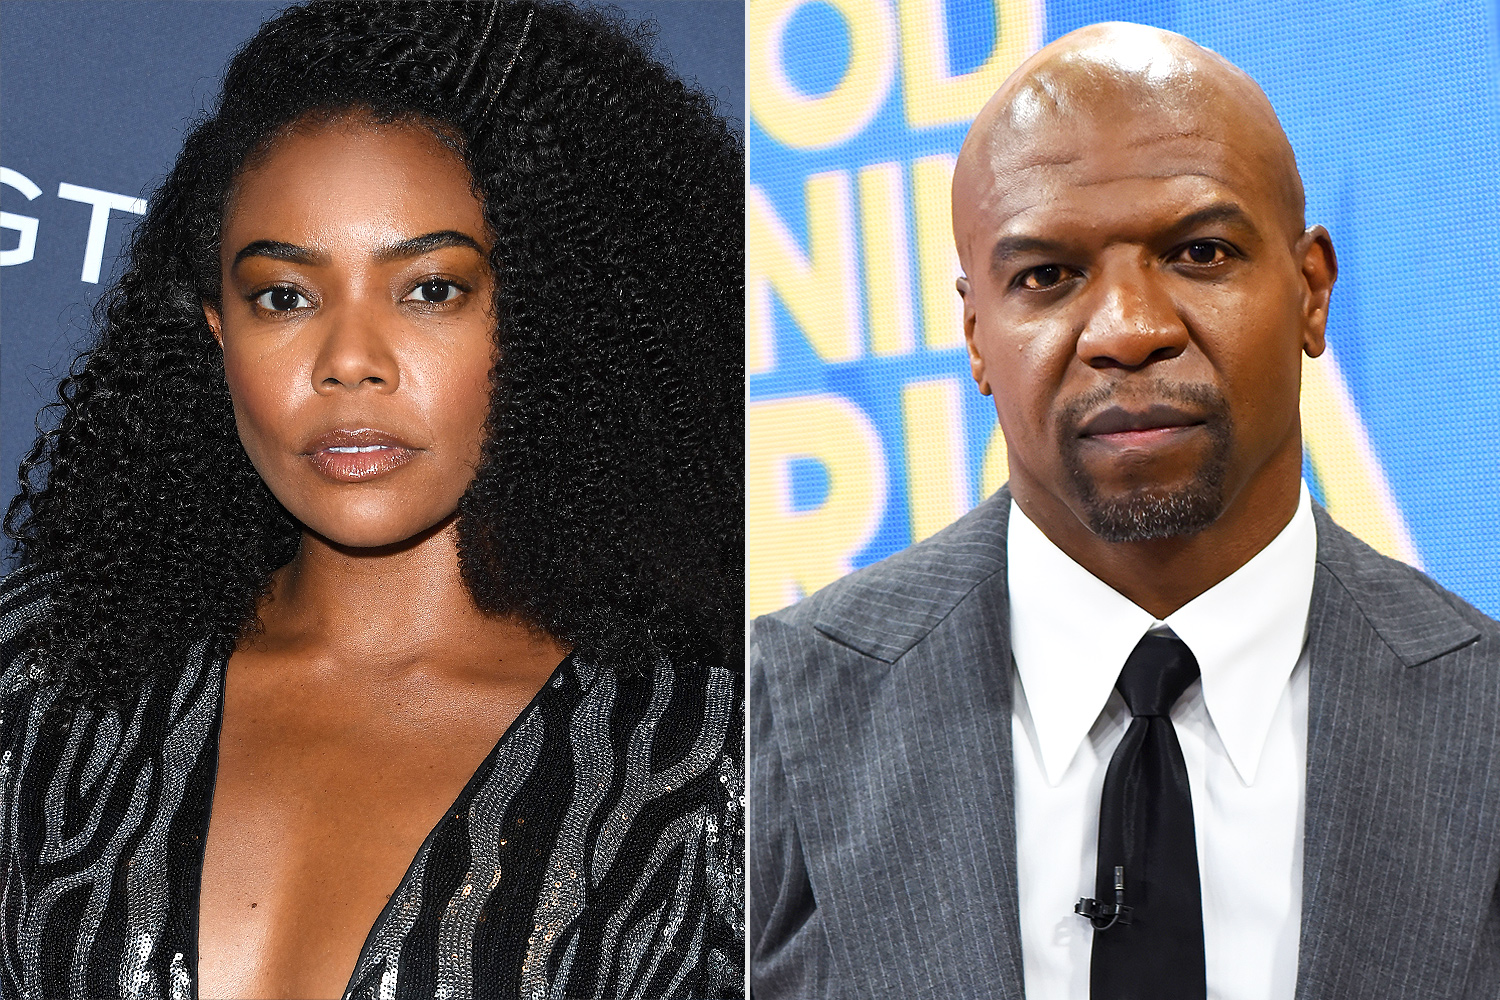 Gabrielle Union and Terry Crews